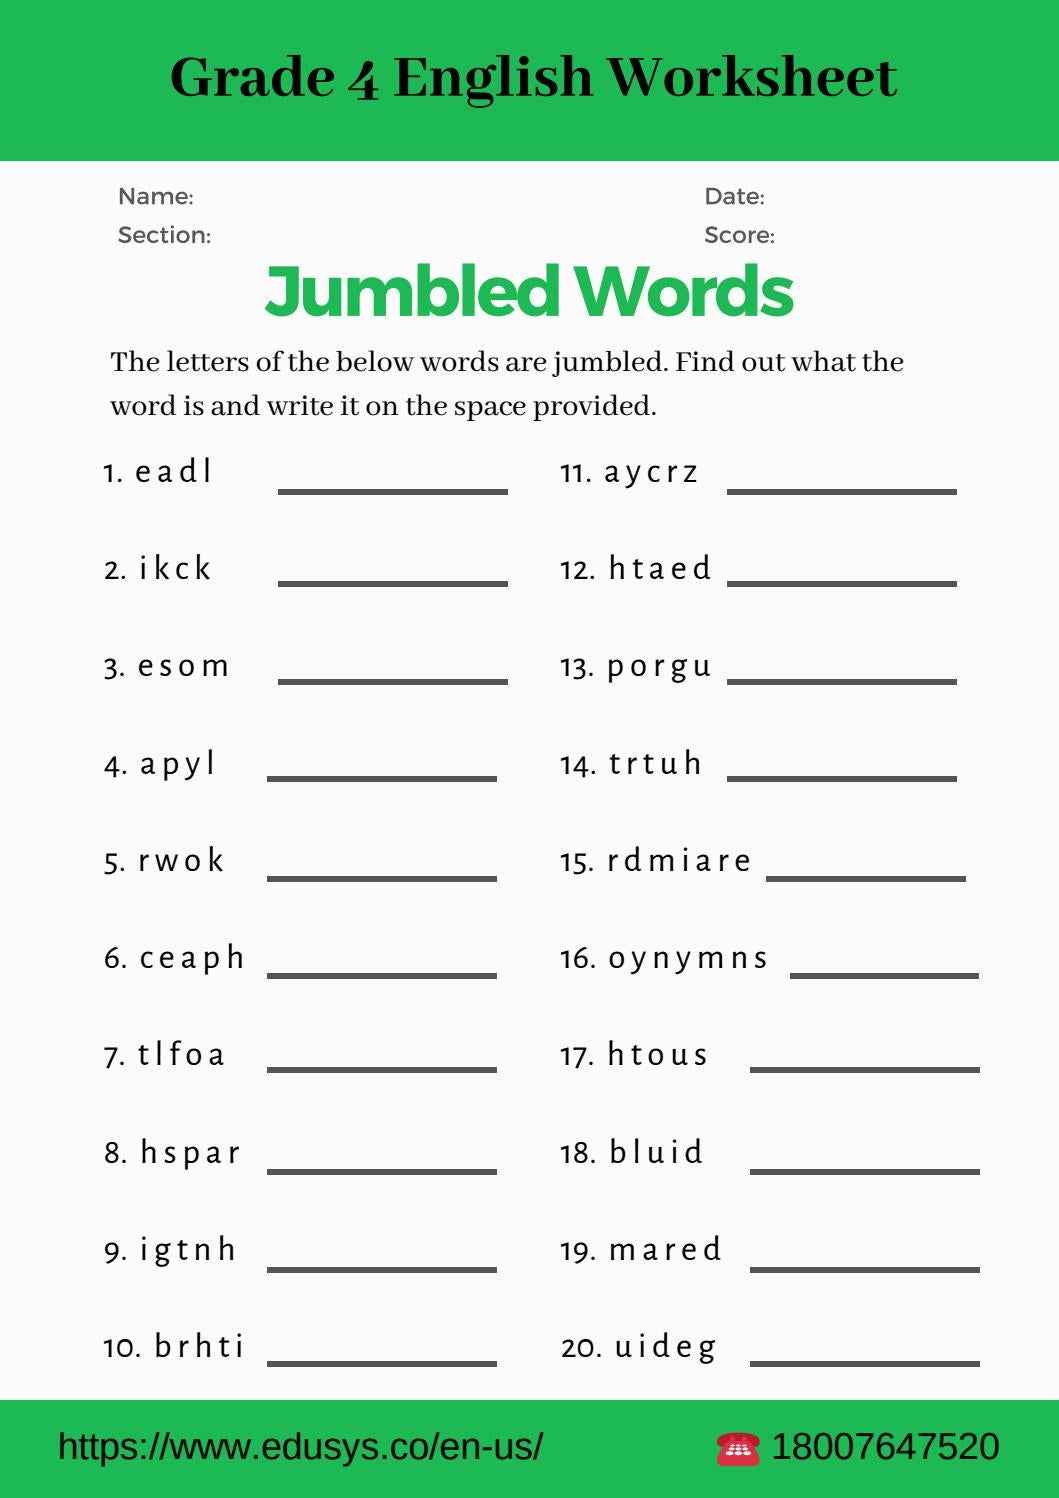 4th grade english vocabulary worksheet pdf by nithya - issuu